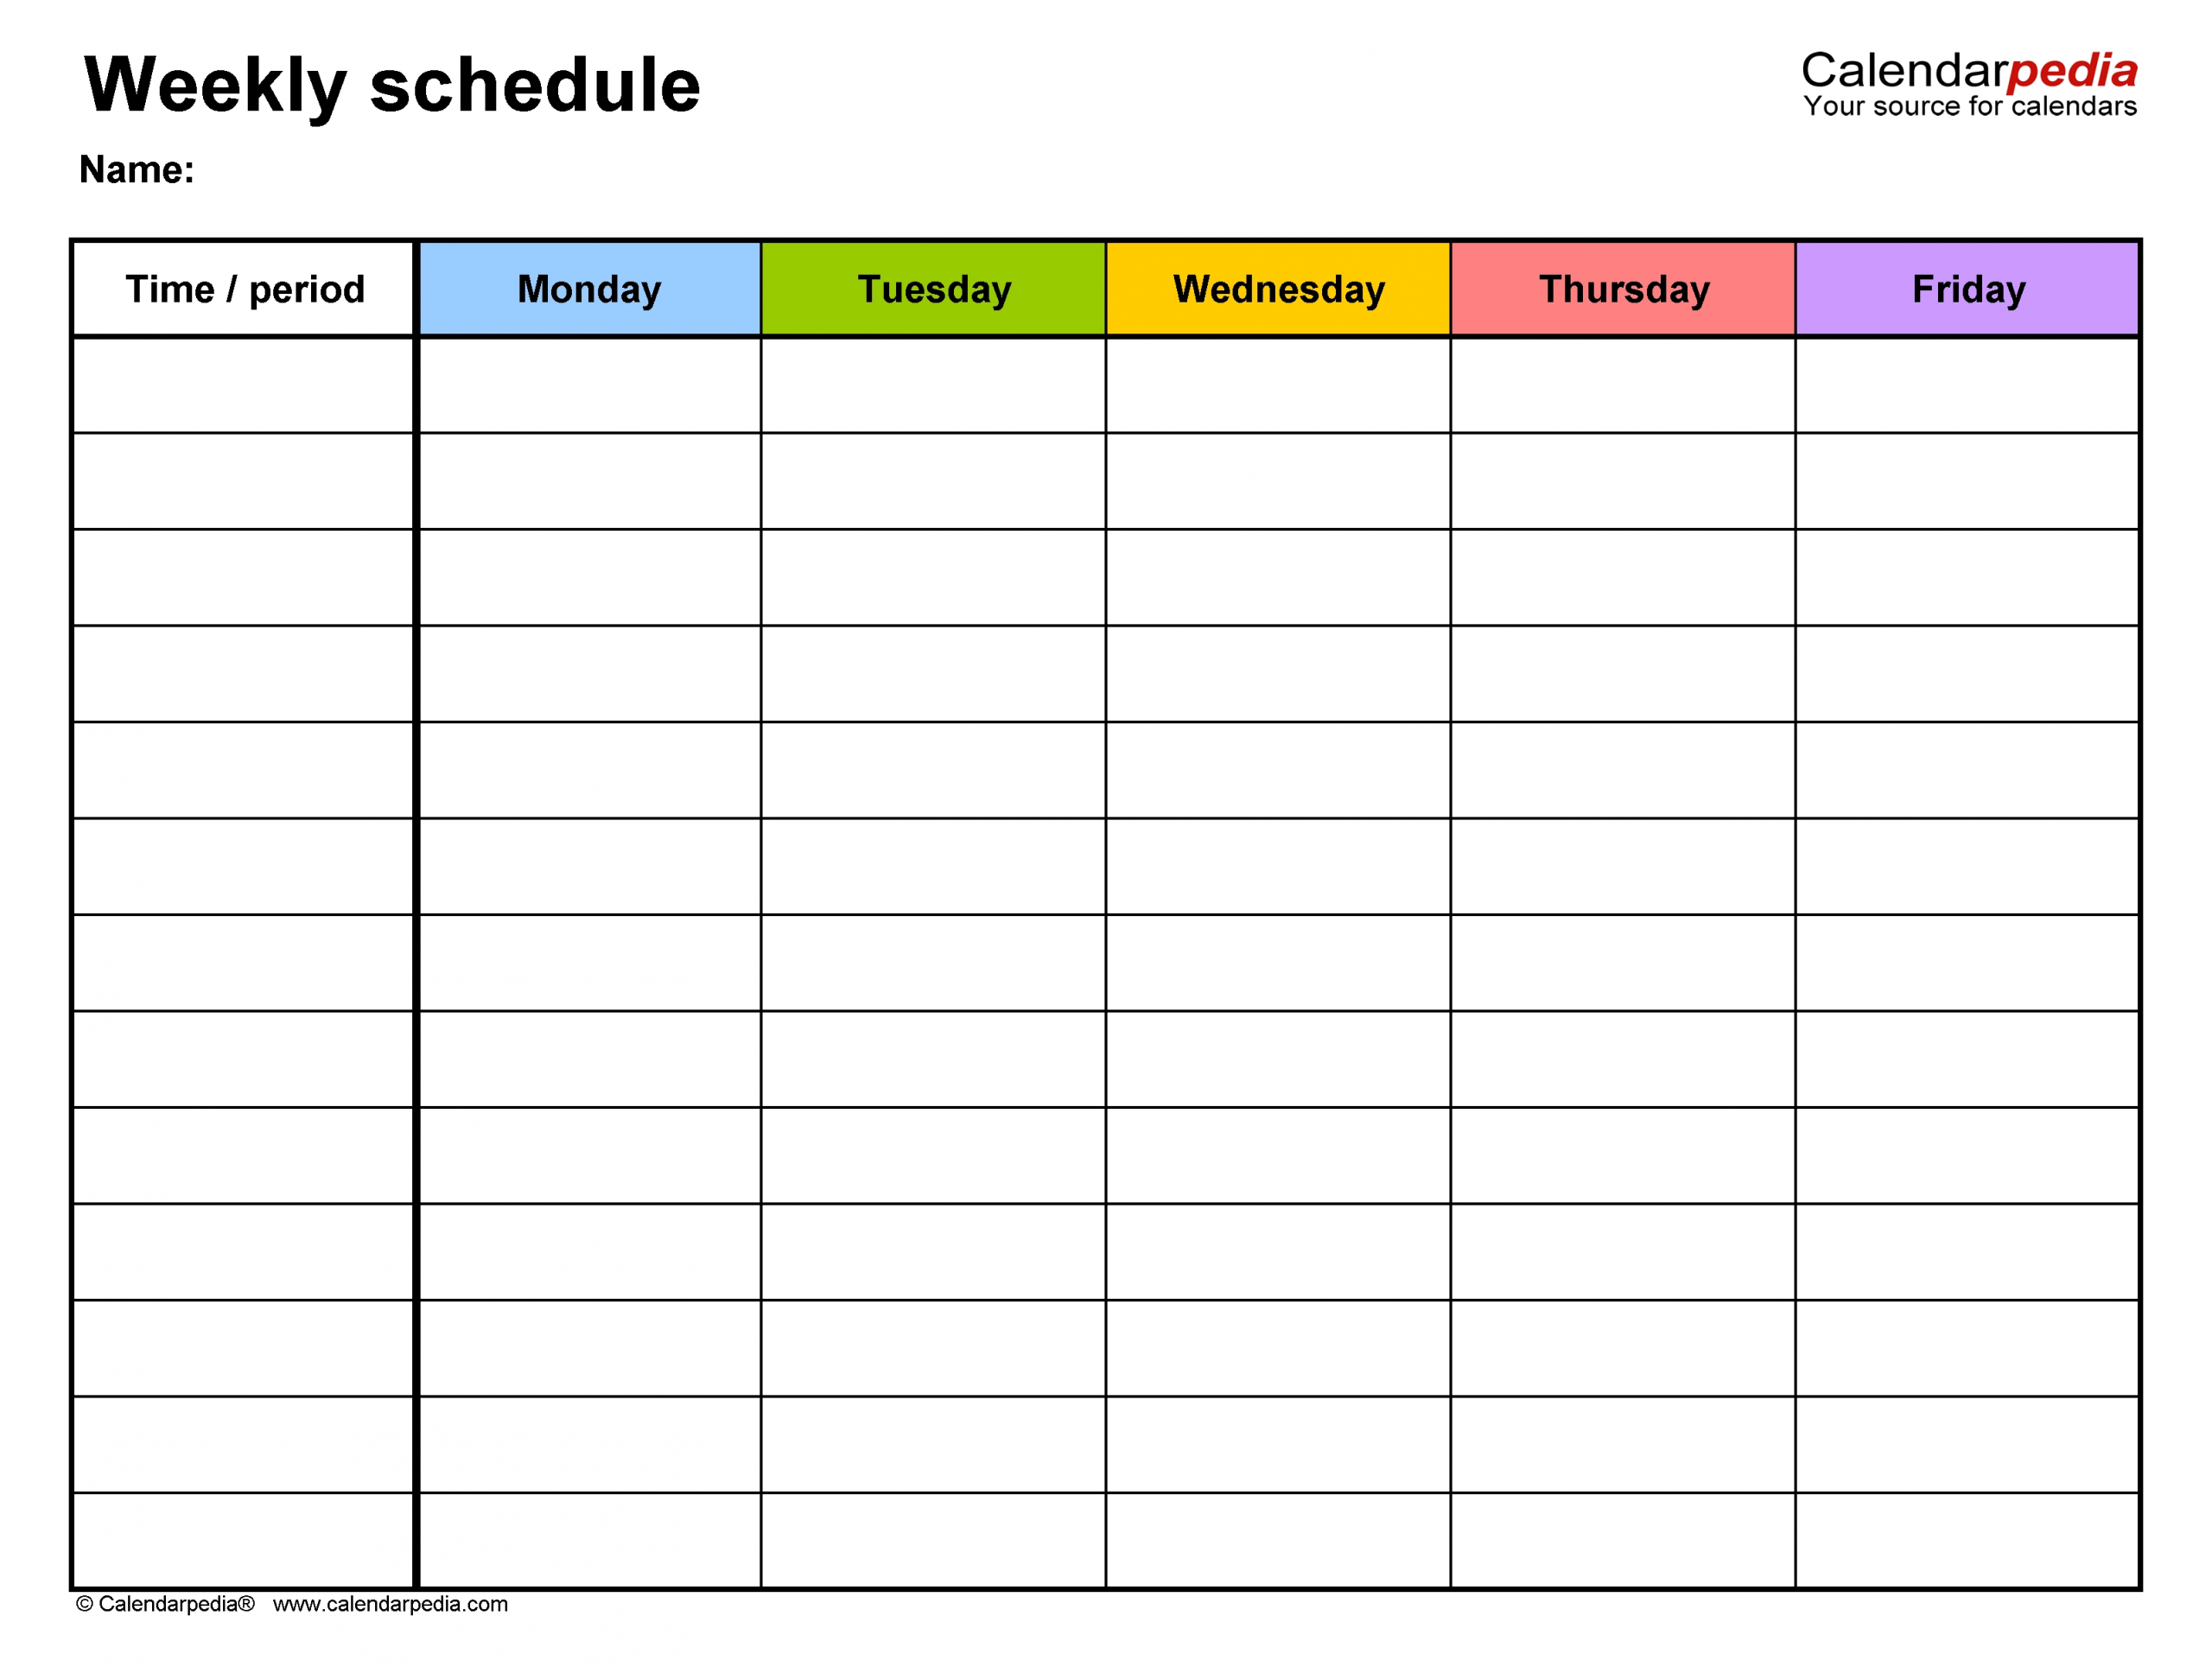 Free Weekly Schedule Templates For Word - 18 Templates  Free Printable Weekly Time Calendar